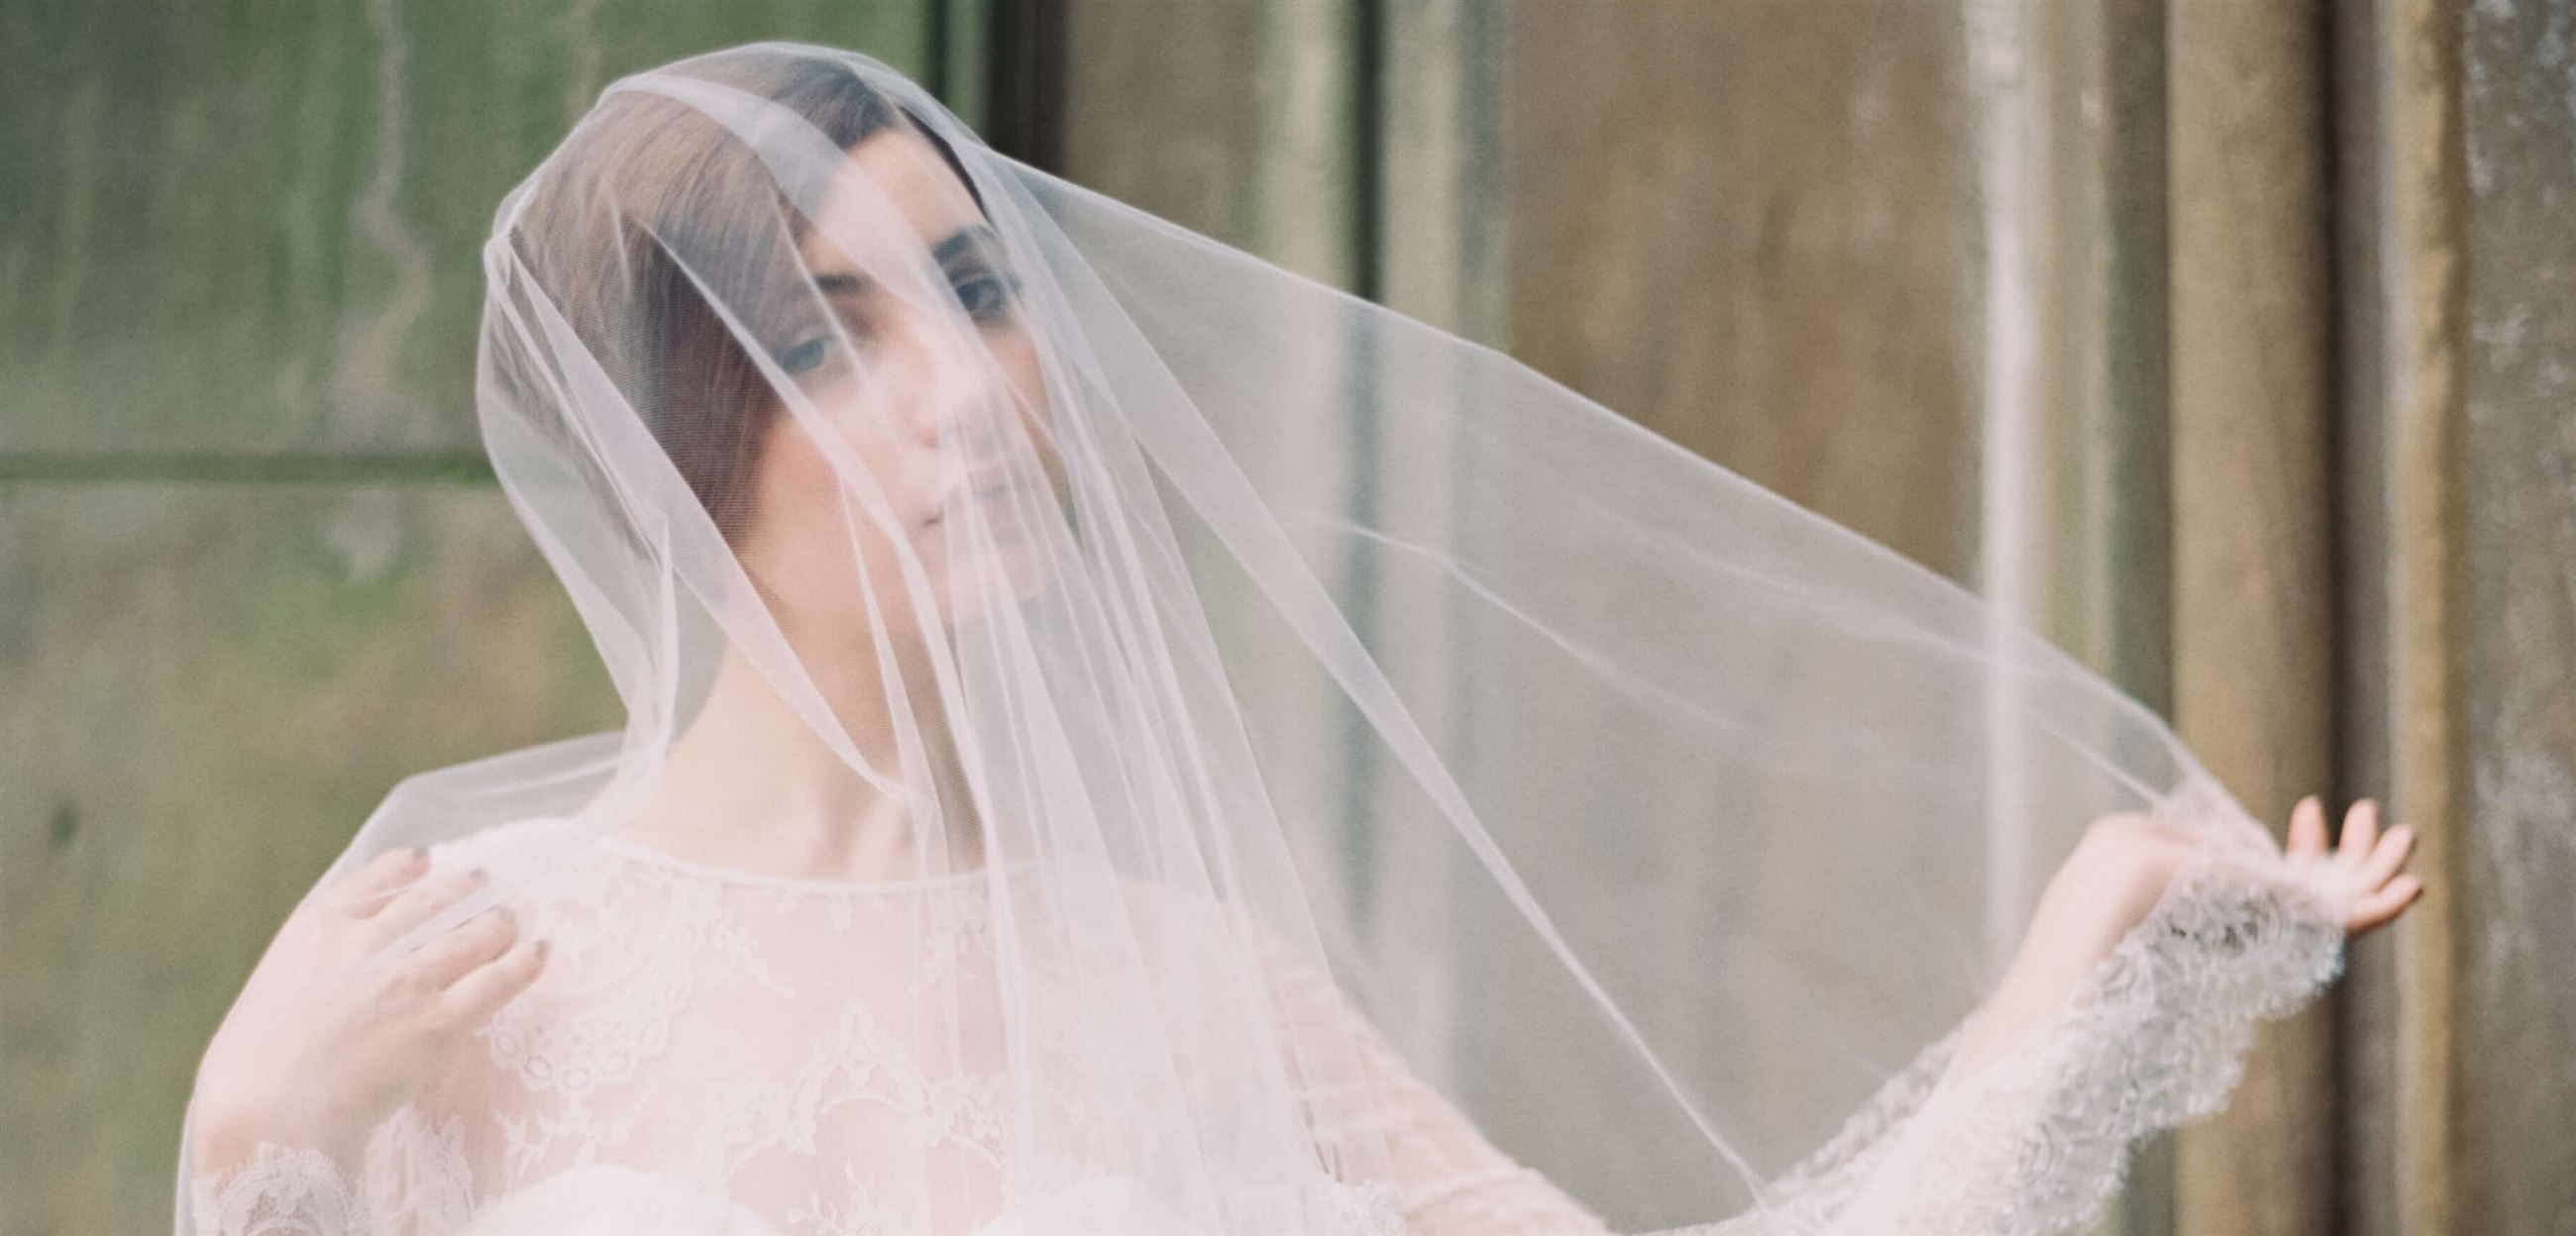 Bride wearing wedding veil. Desktop Image